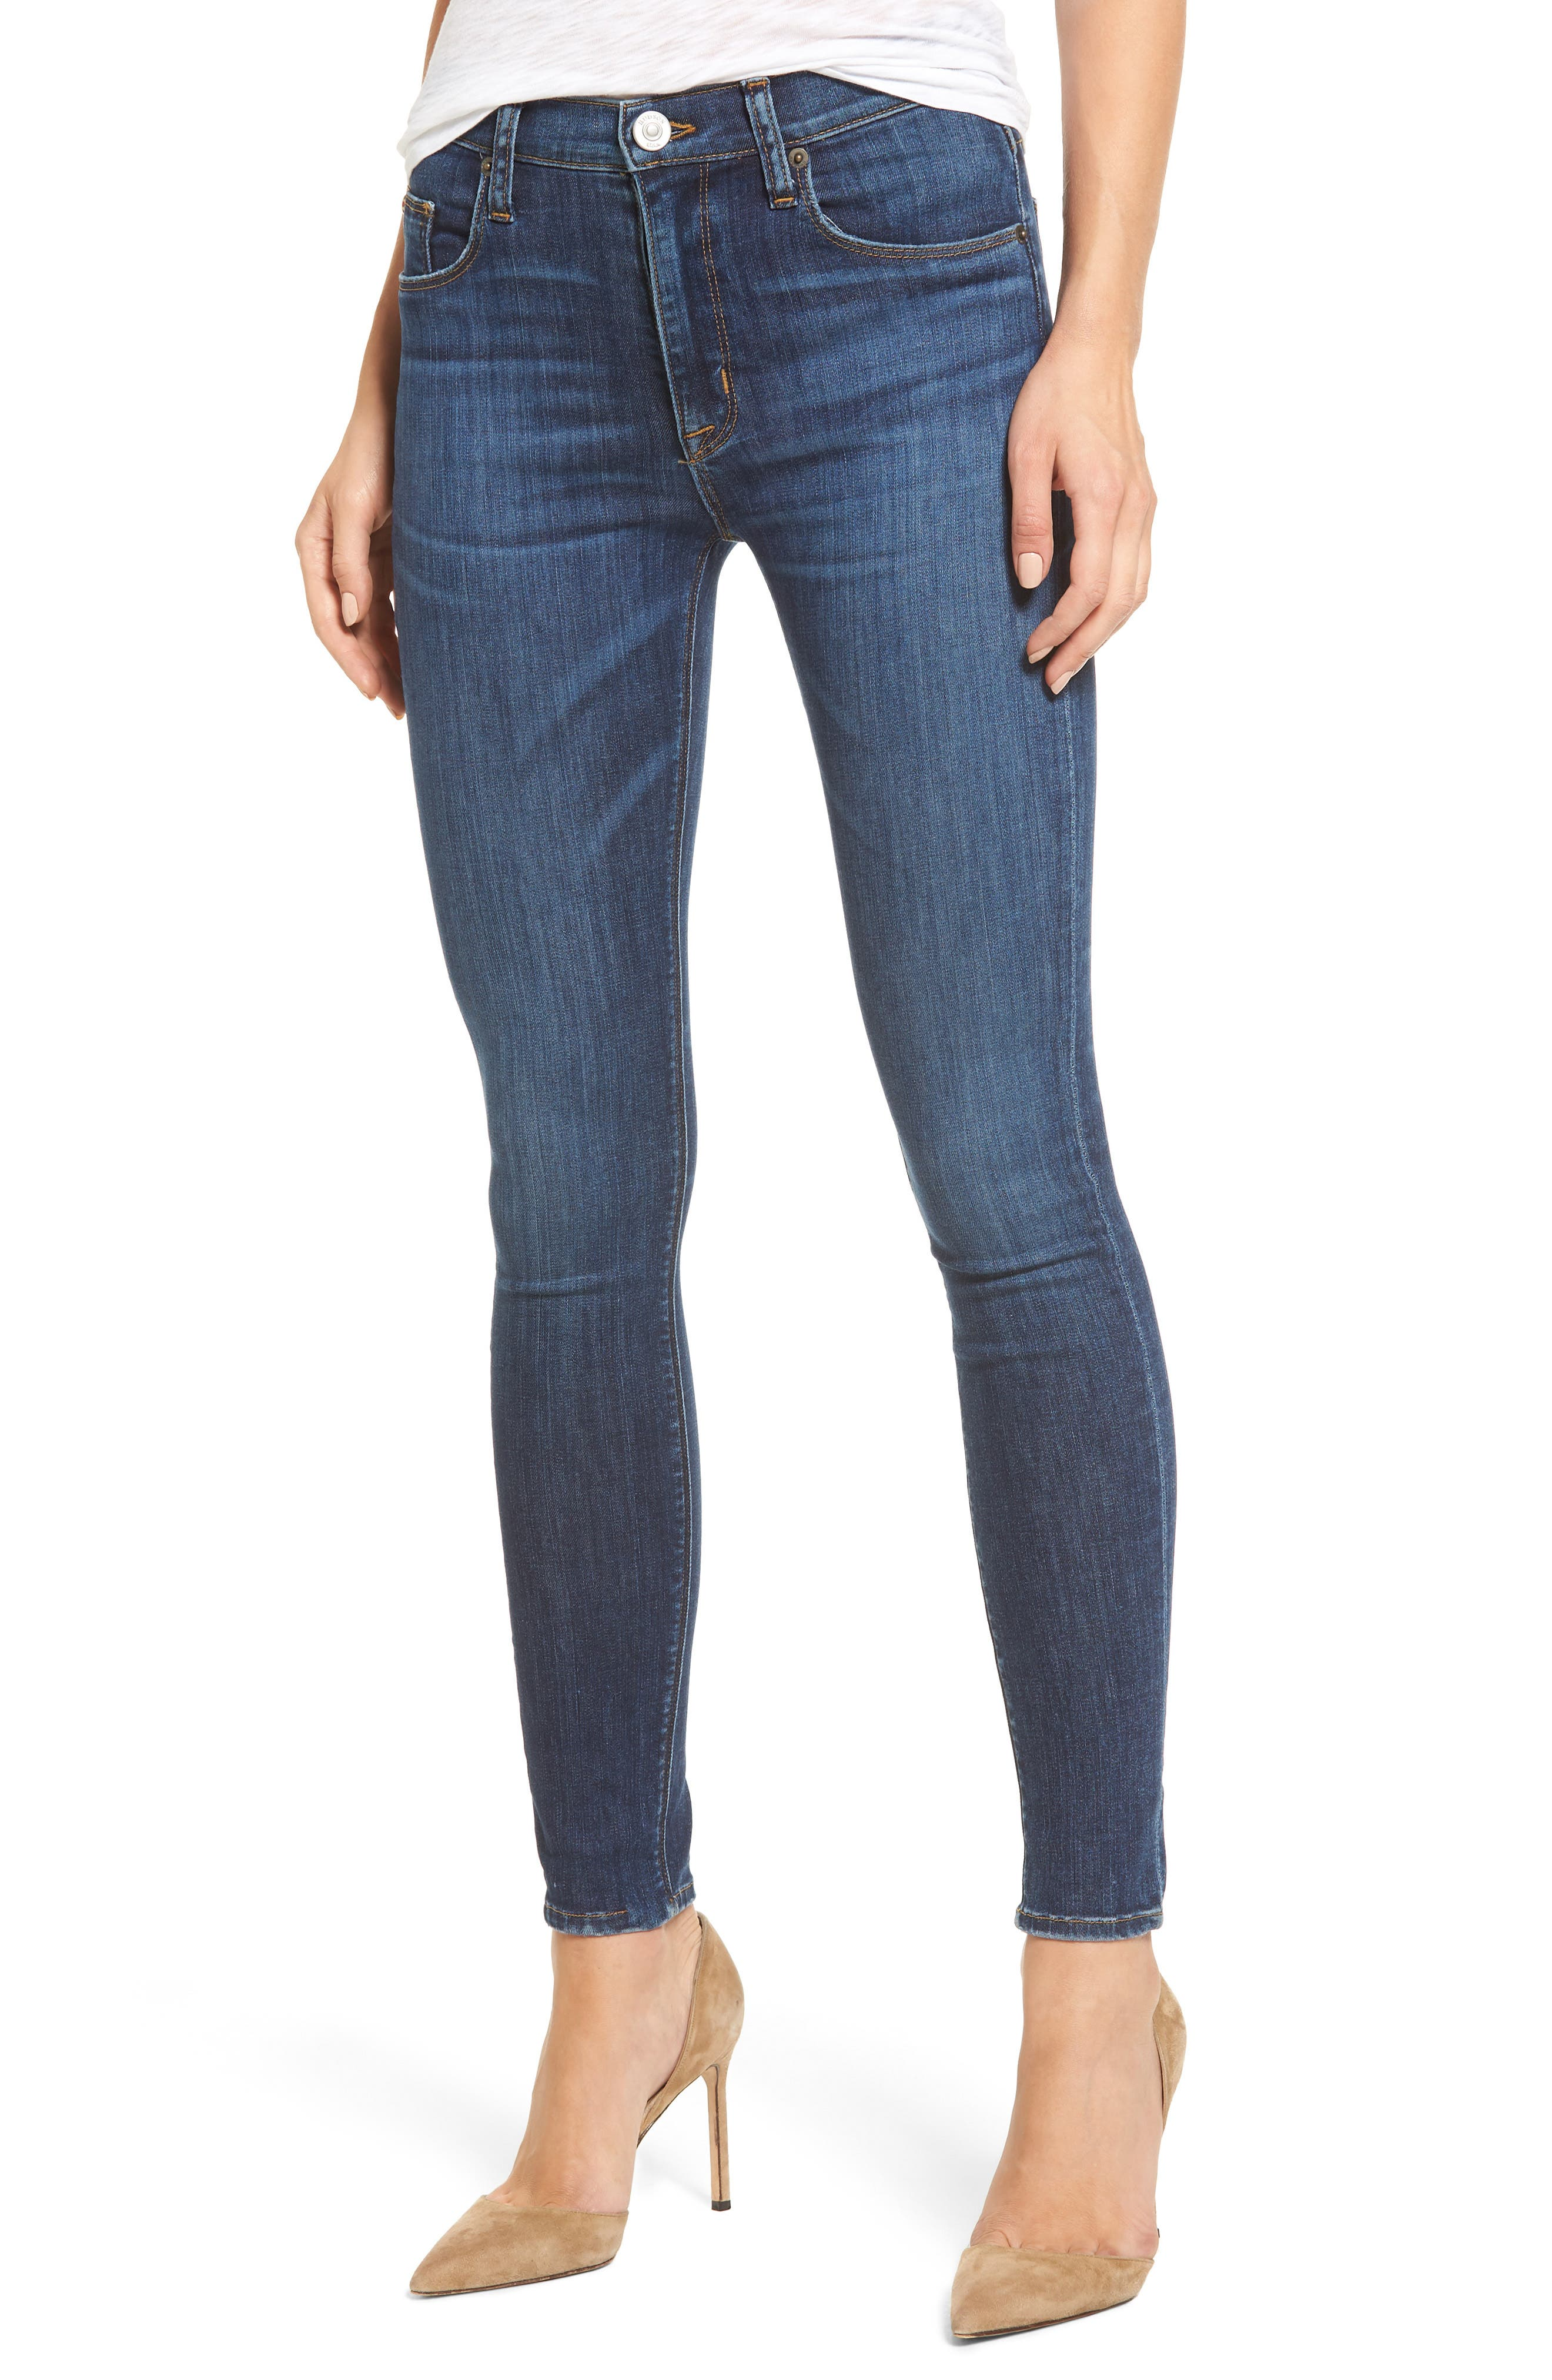 'Barbara' High Rise Super Skinny Jeans,                             Main thumbnail 1, color,                             Dream On